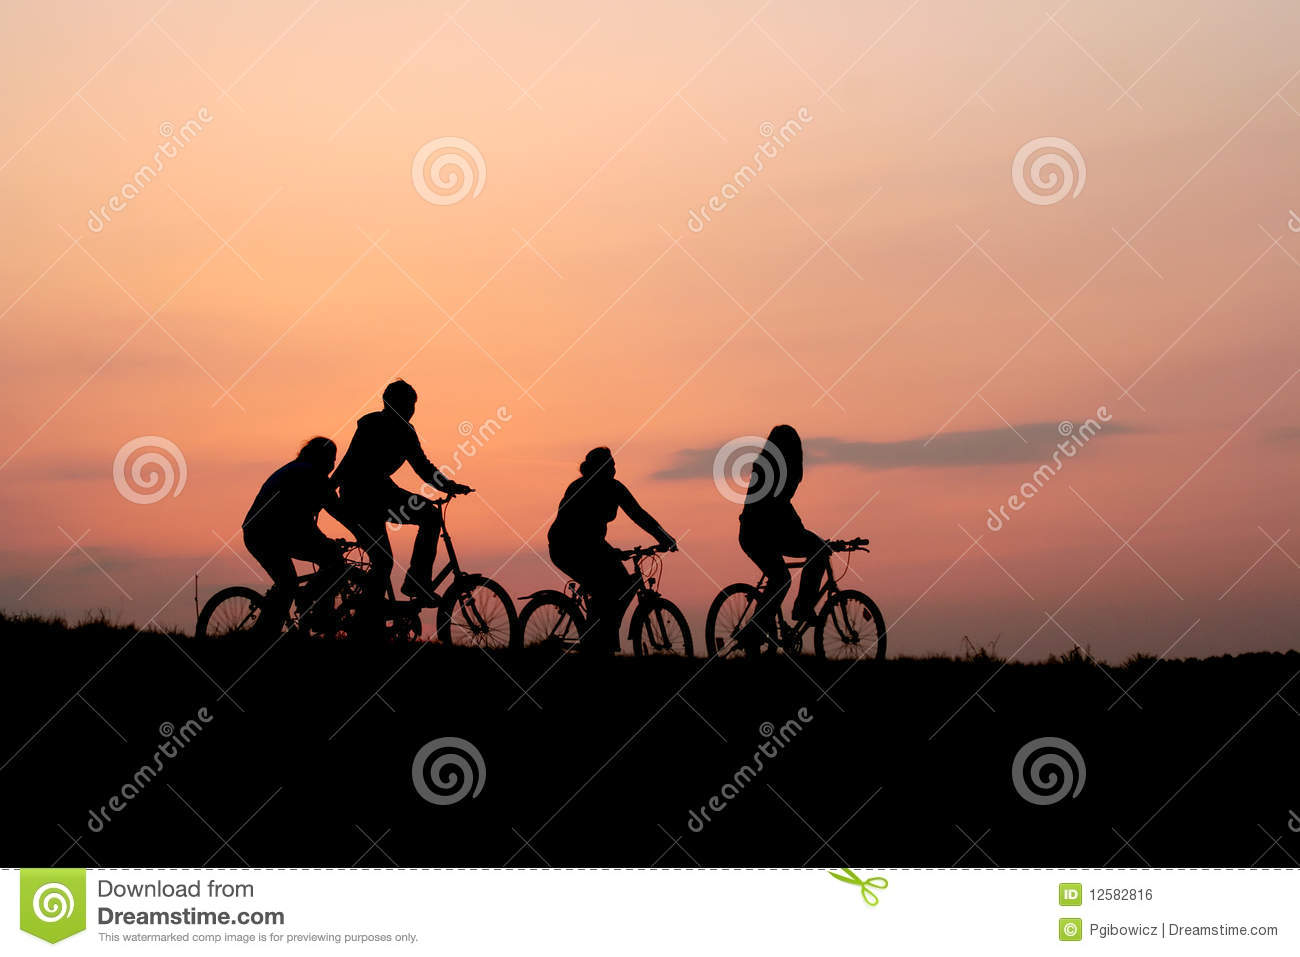 Silhouettes of a family on a bikes